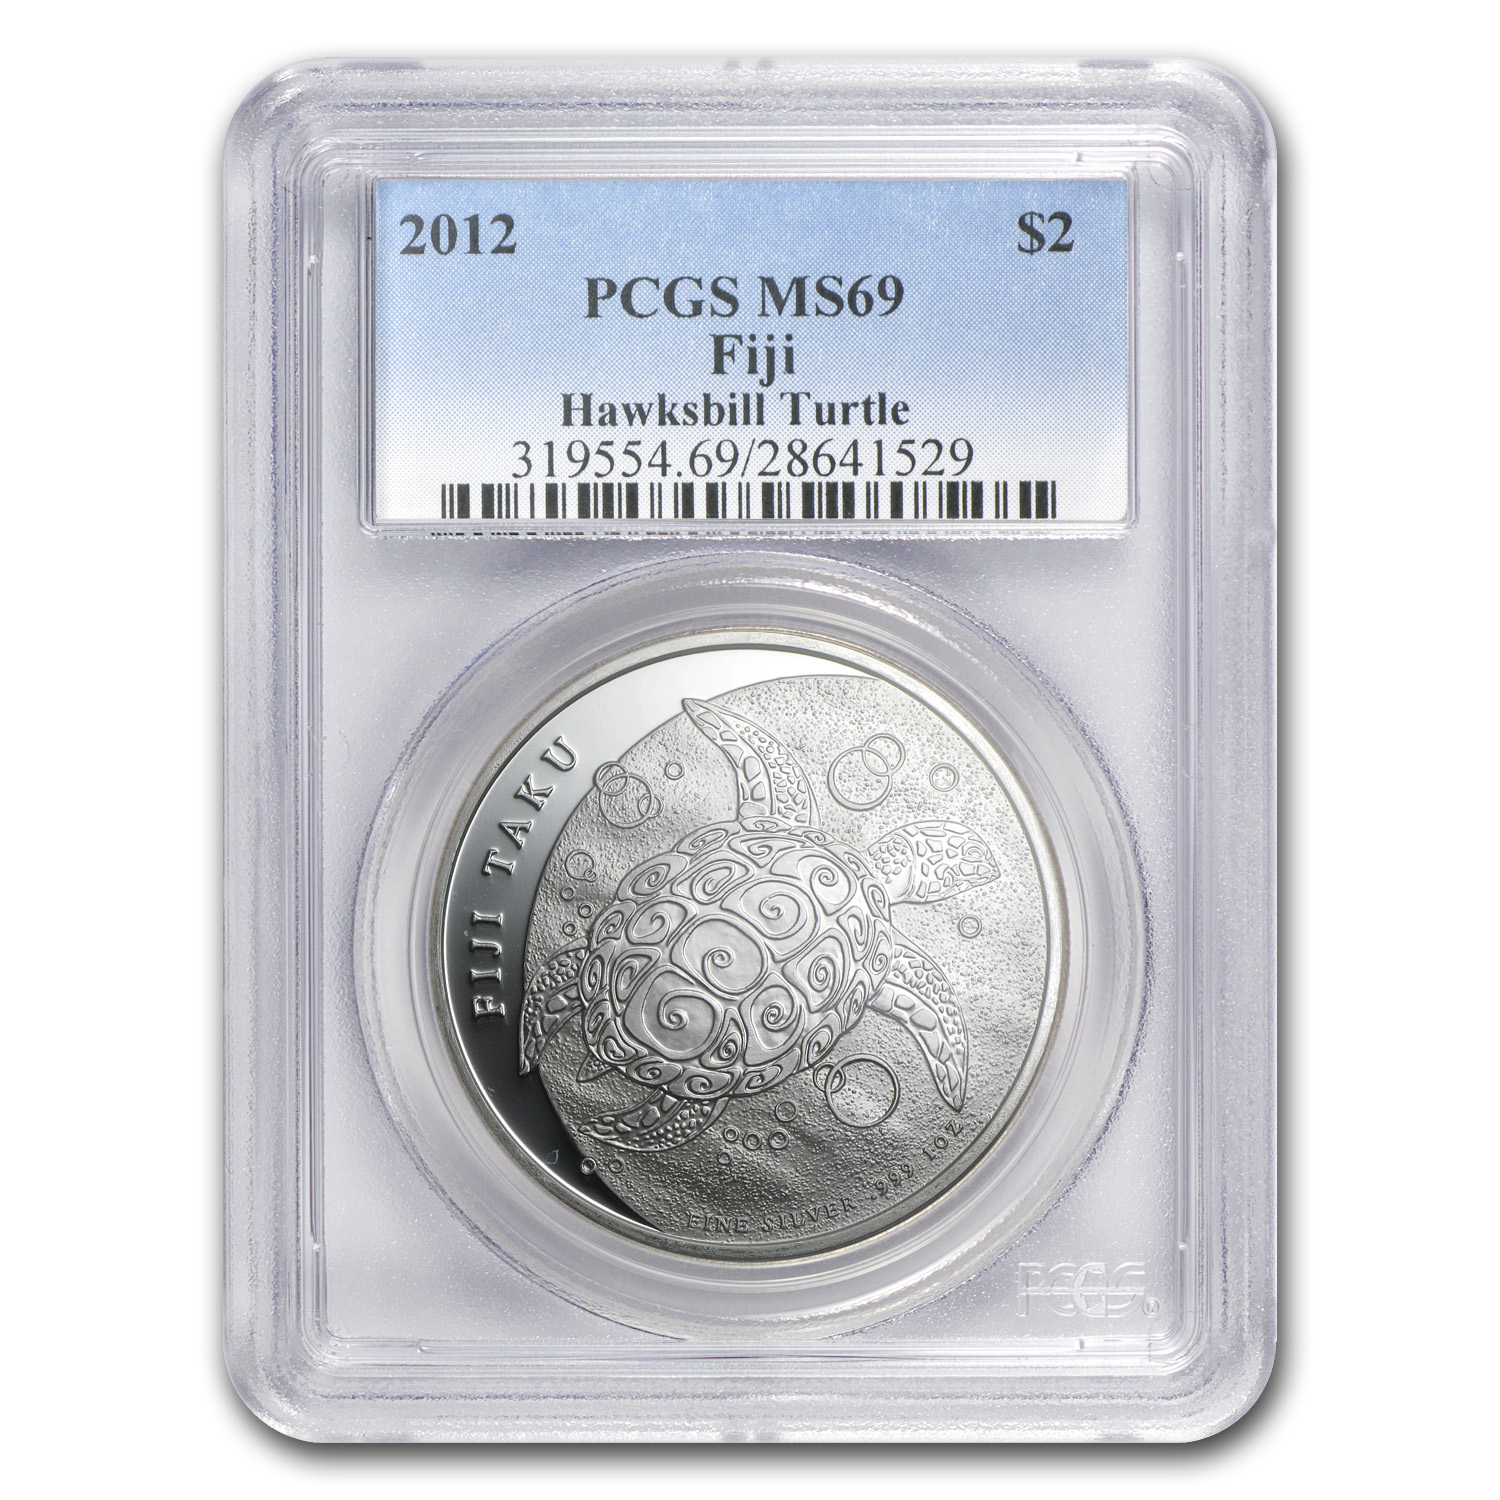 2012 1 oz Silver New Zealand Mint $2 Fiji Taku .999 MS-69 PCGS